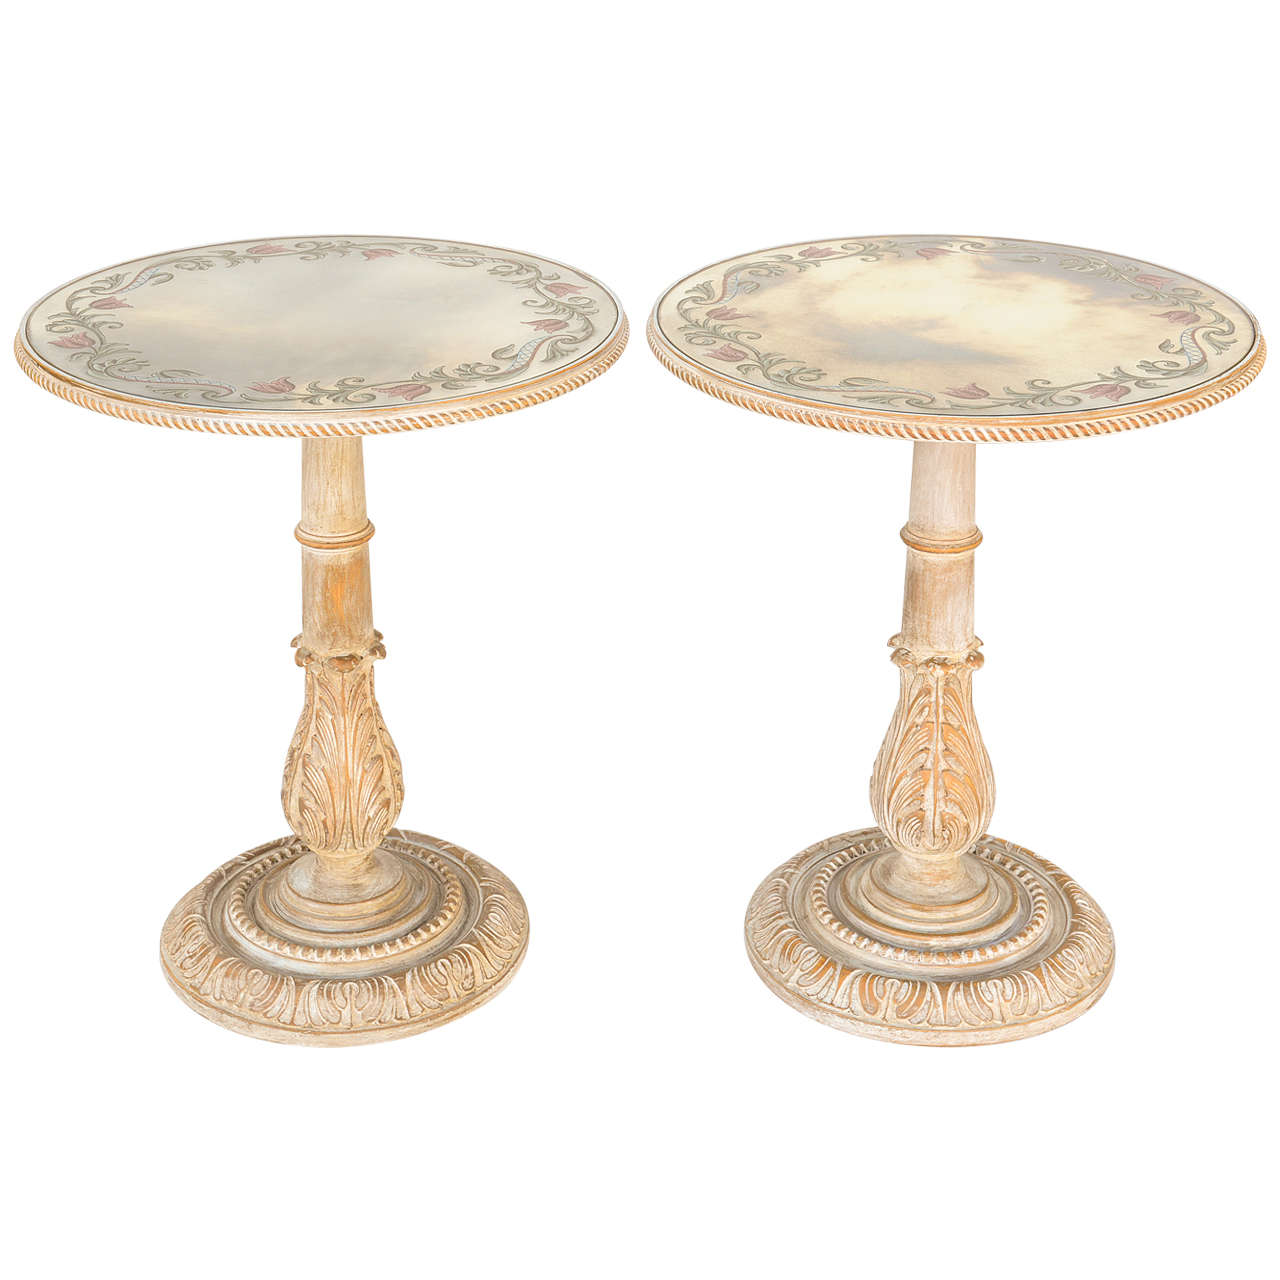 Pair of Italian End Tables with Eglomise Mirrored Tops